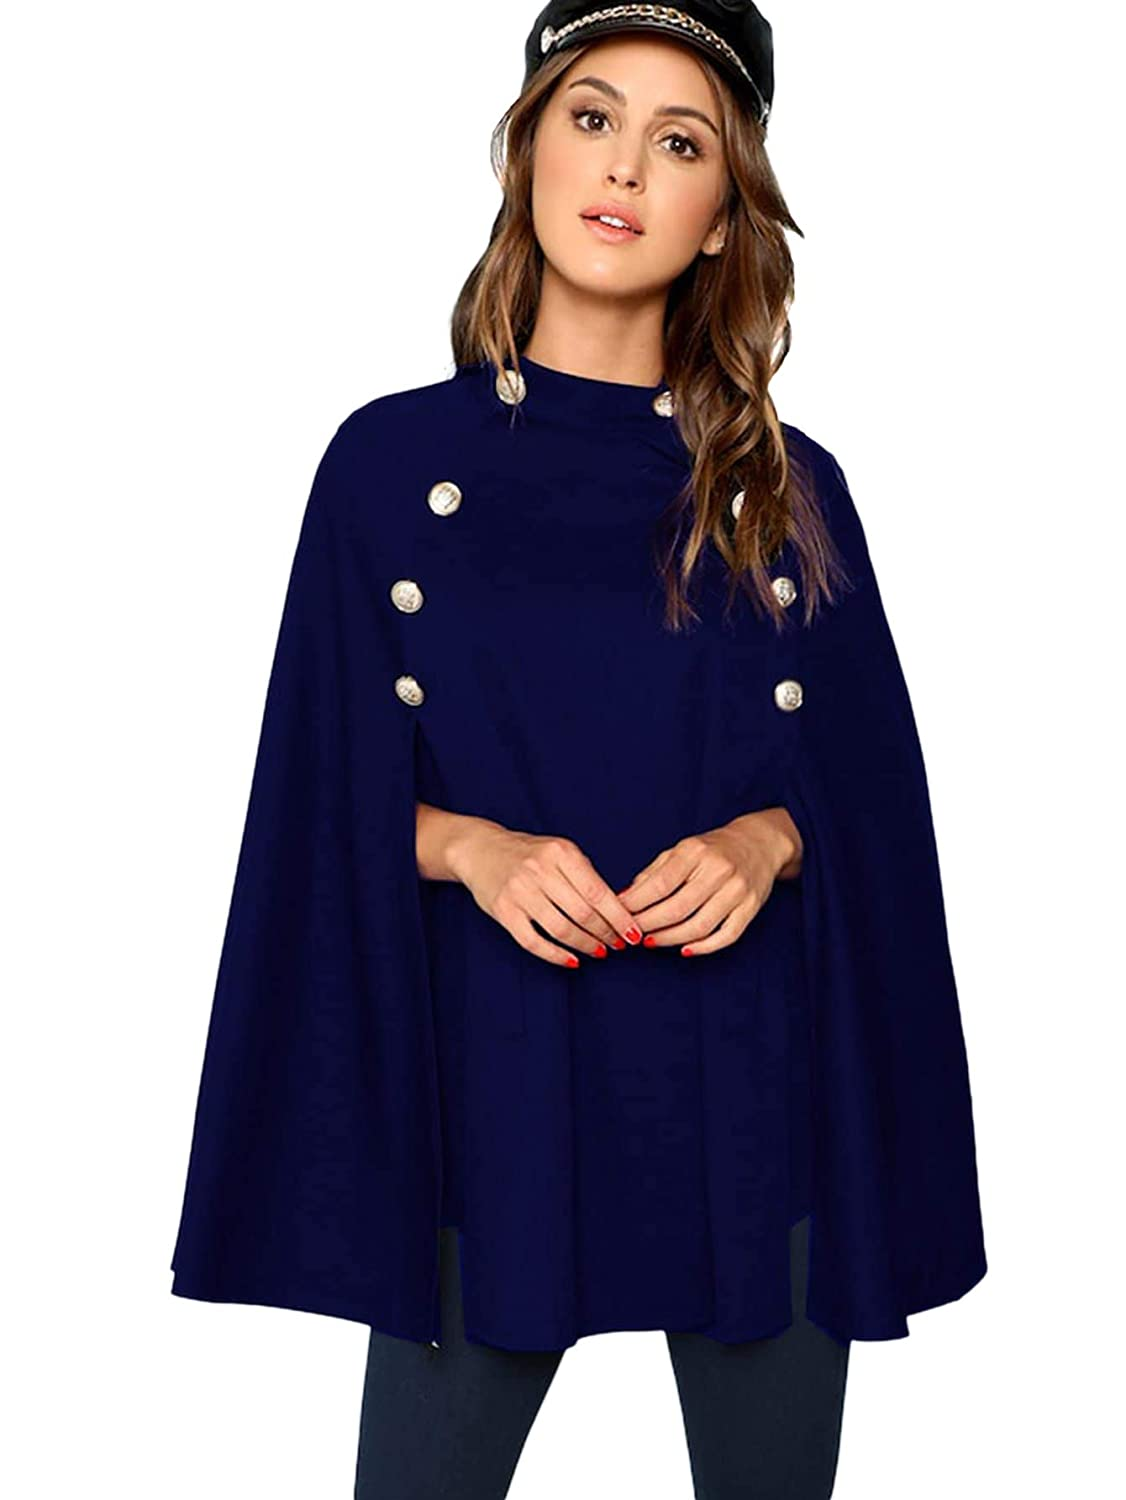 Vintage Coats & Jackets | Retro Coats and Jackets MAKEMECHIC Womens Double Button Cloak Sleeve Elegant Cape Mock Poncho Classy Coat $30.99 AT vintagedancer.com